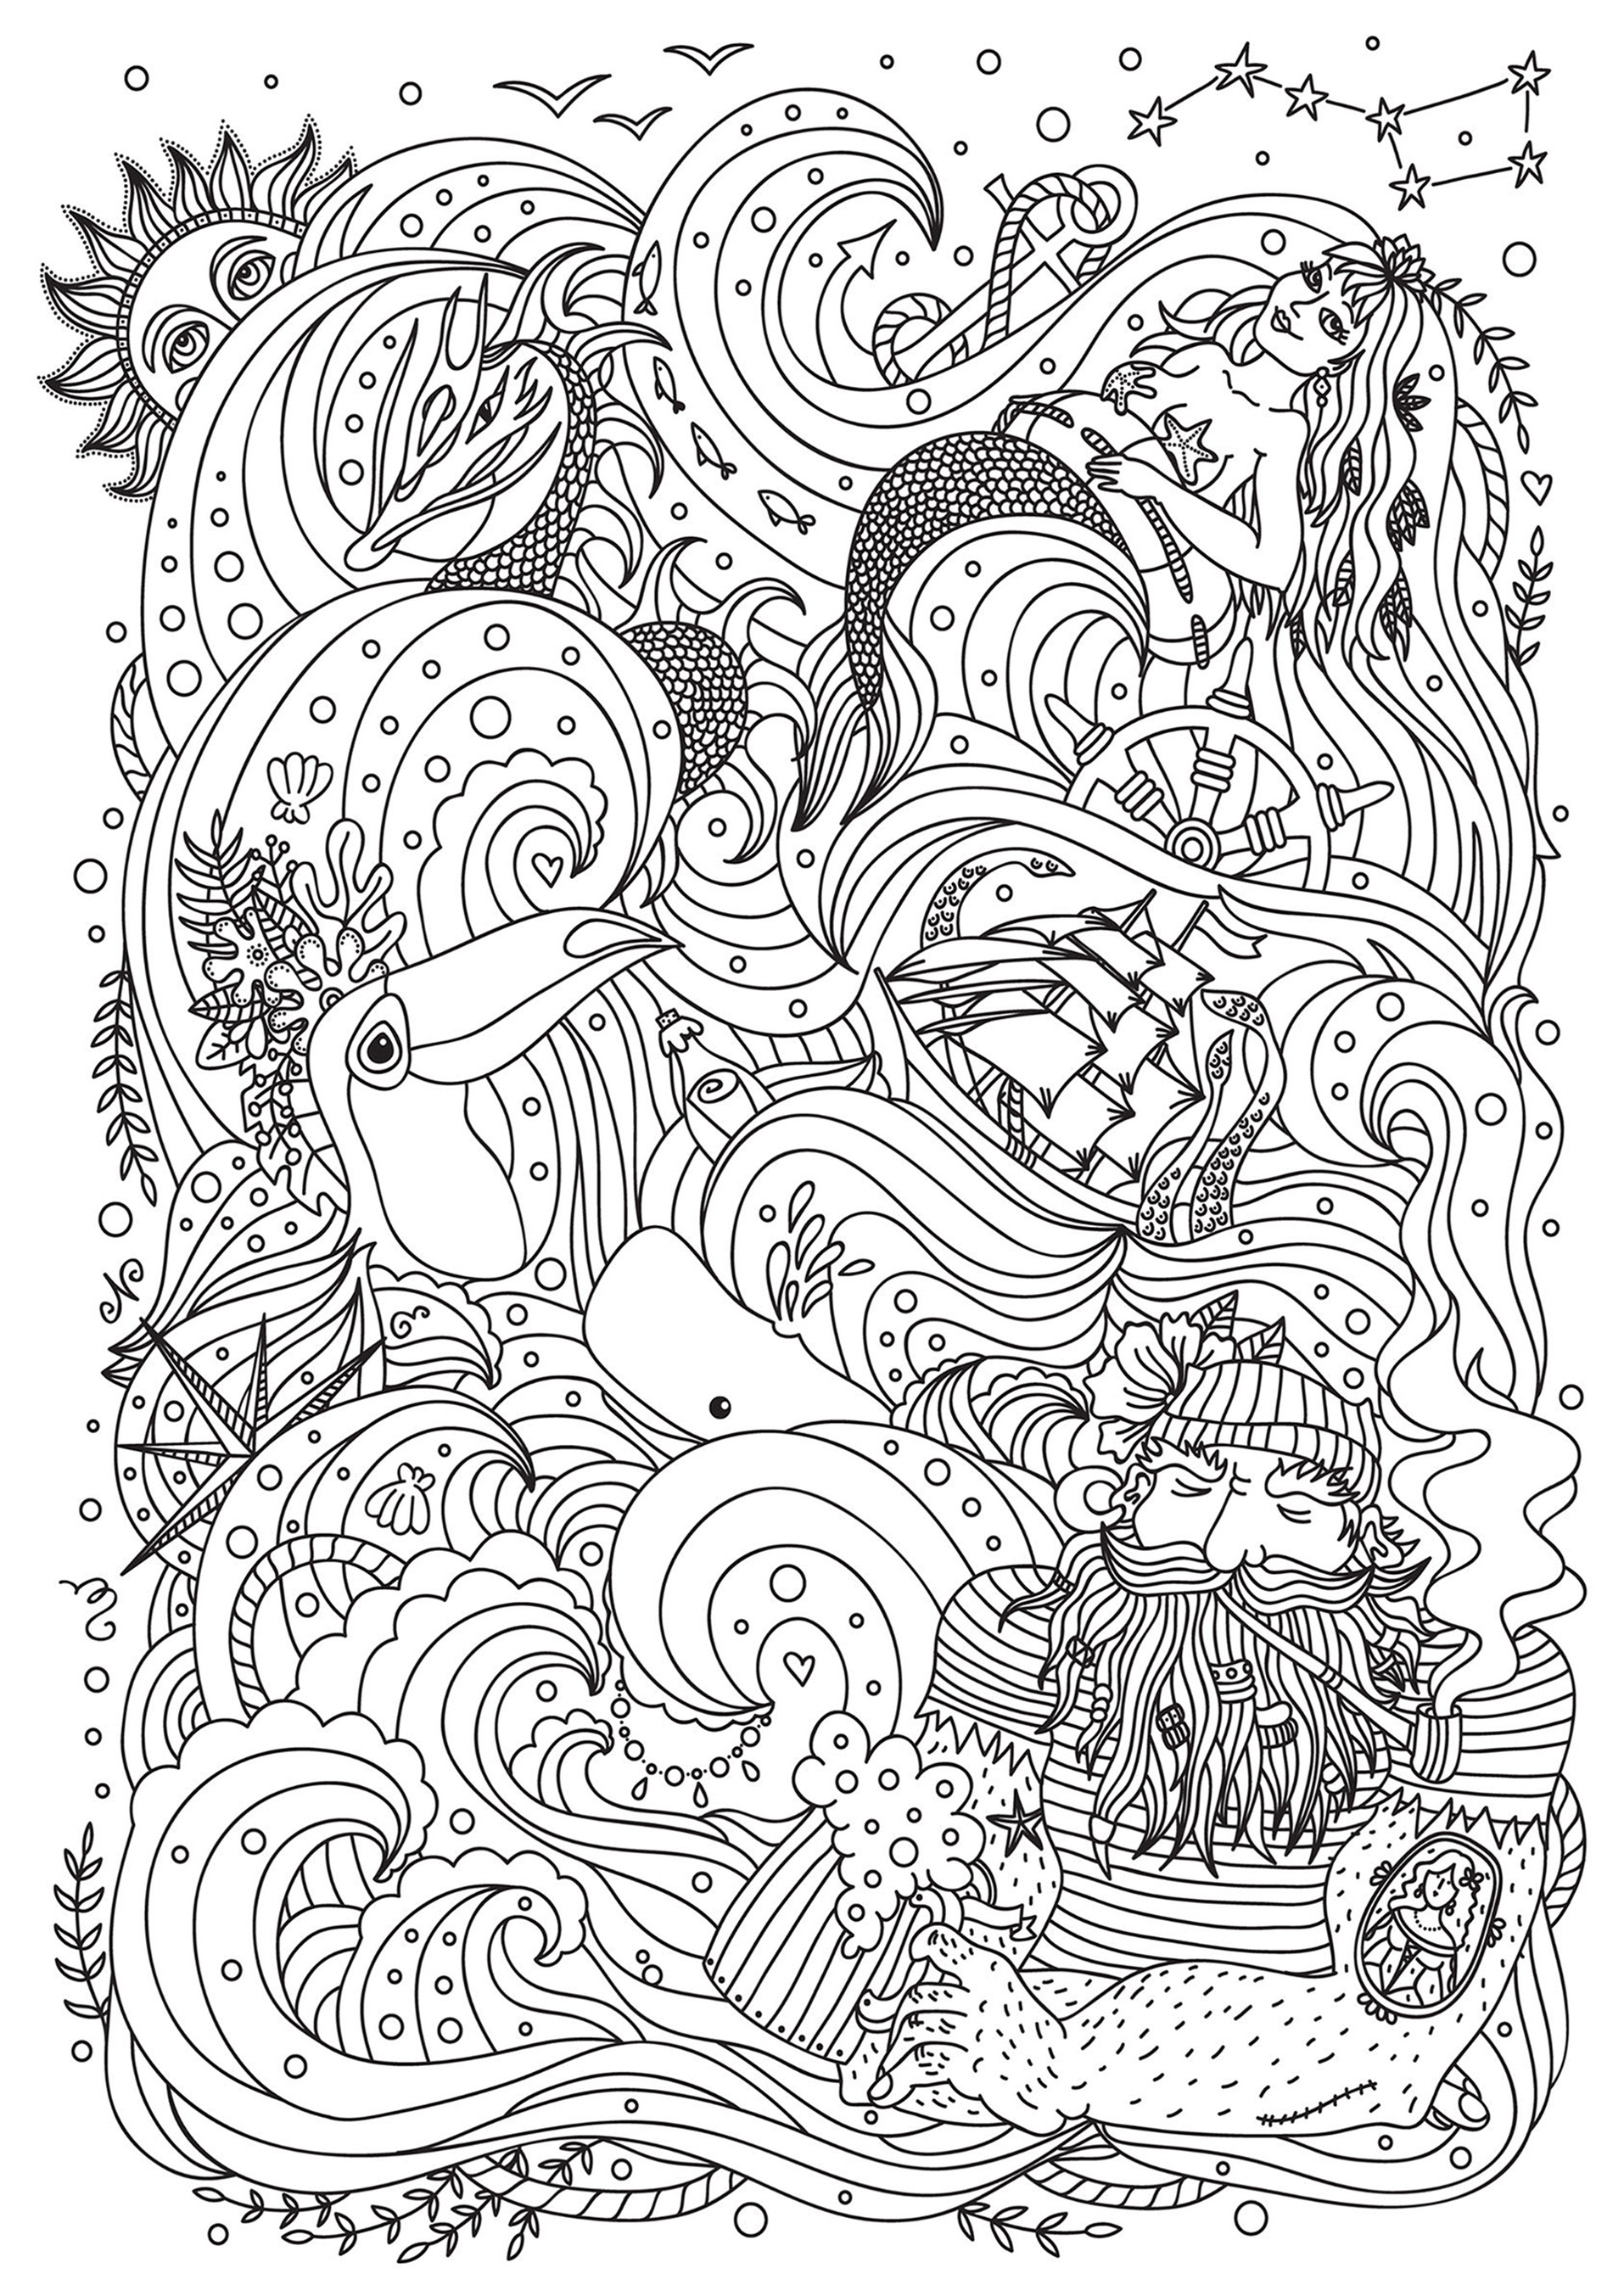 Mermaid Sailor Bird And Boat Mermaids Adult Coloring Pages